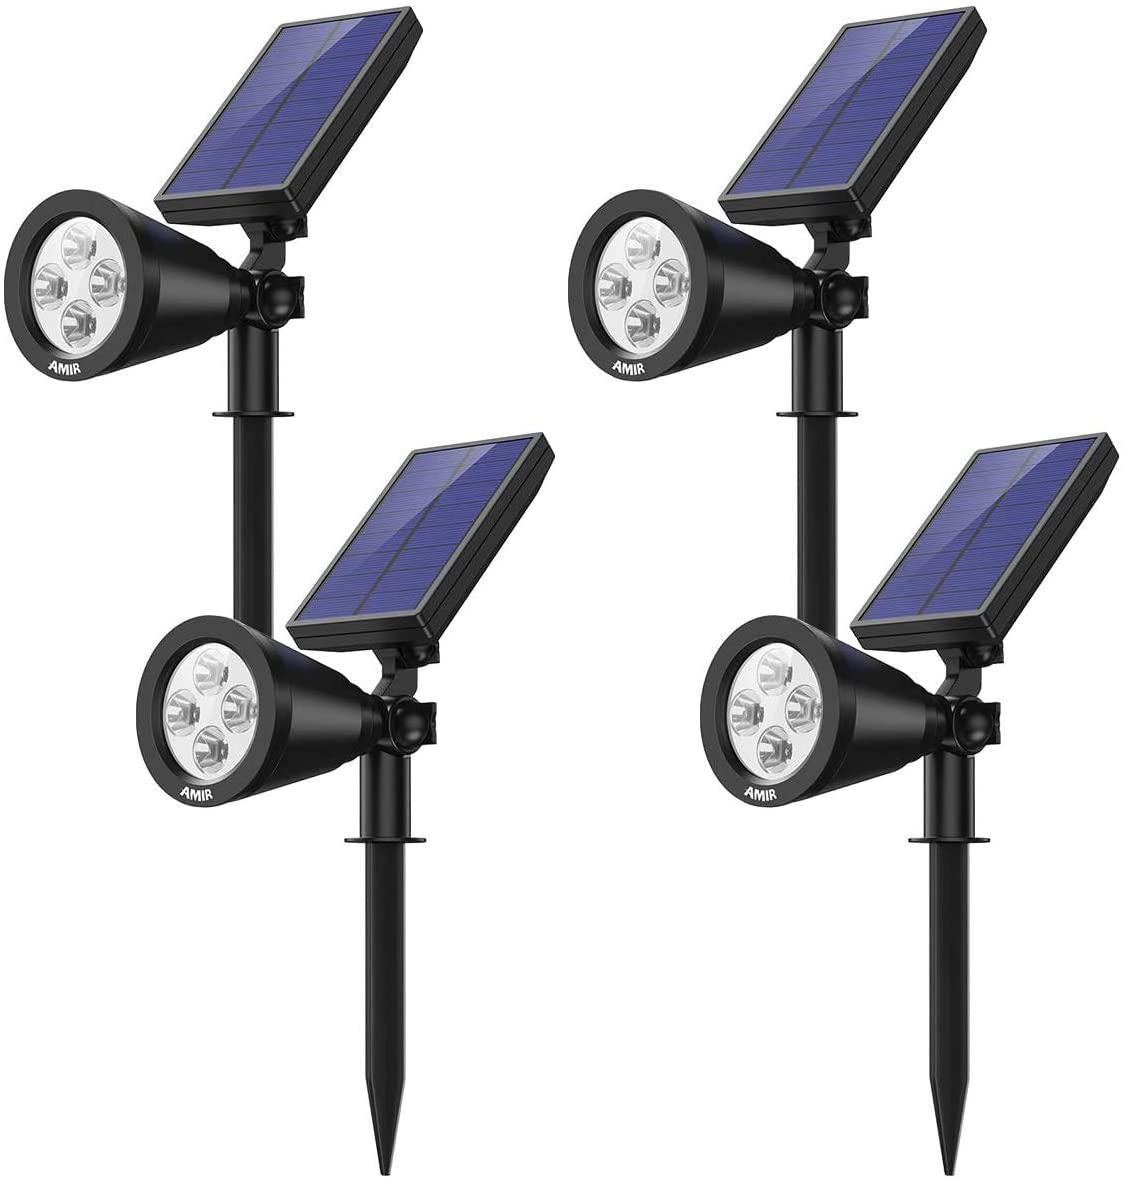 AMIR Solar Spotlights Outdoor Upgraded, Waterproof 4 LED Solar Security Landscape Lights, Adjustable Solar Garden Light with Auto On Off for Yard Driveway Pathway Pool Patio 4 Pack,White